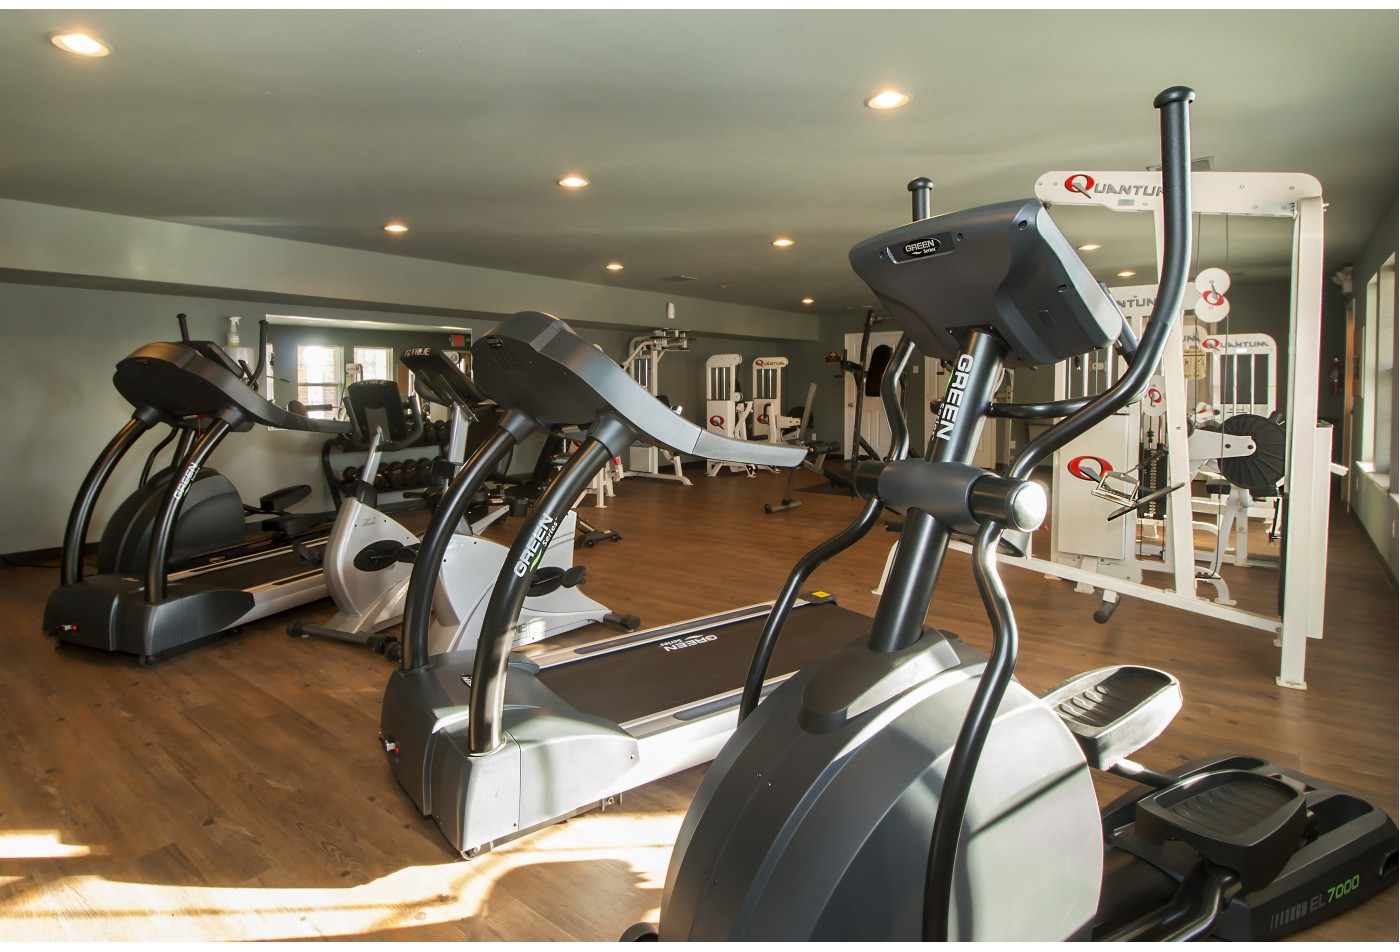 Orchard Park apartments new fitness center amenity